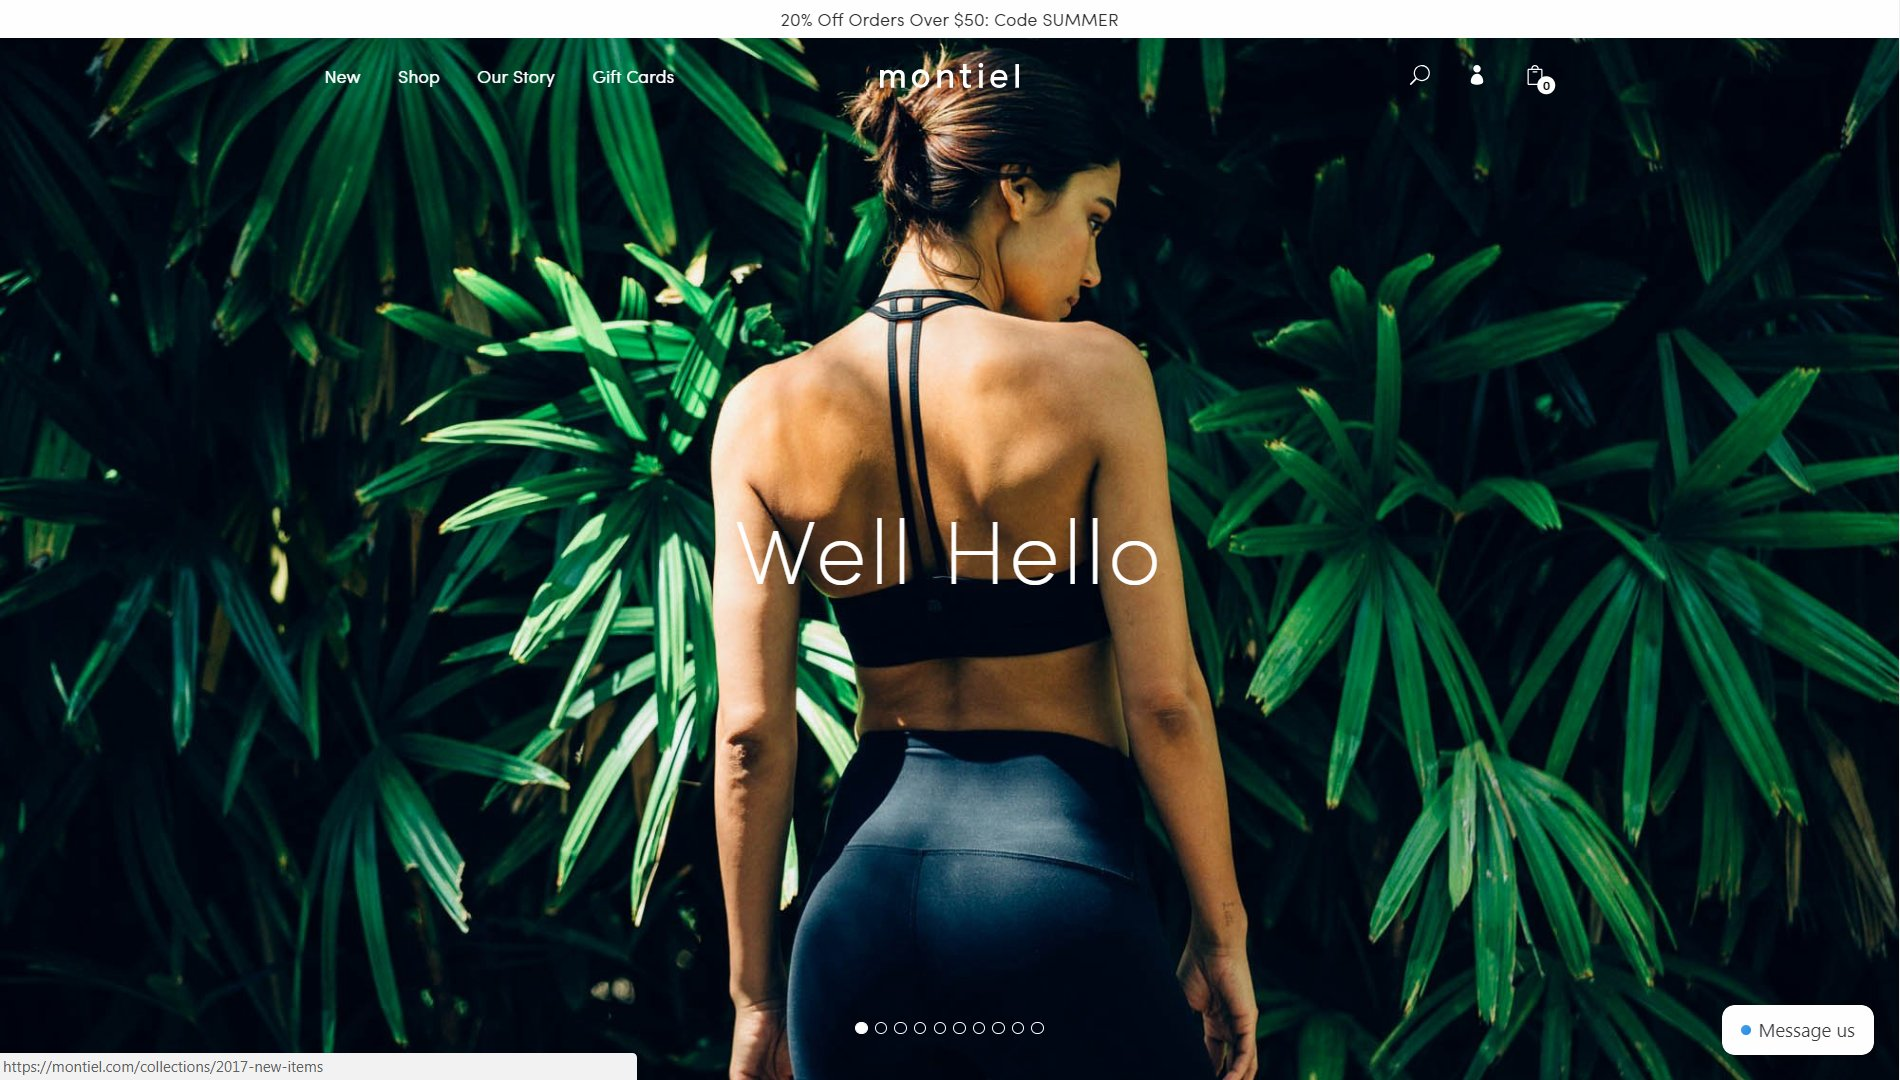 0b55b56c0cce4 Montiel Activewear Website SEO Review